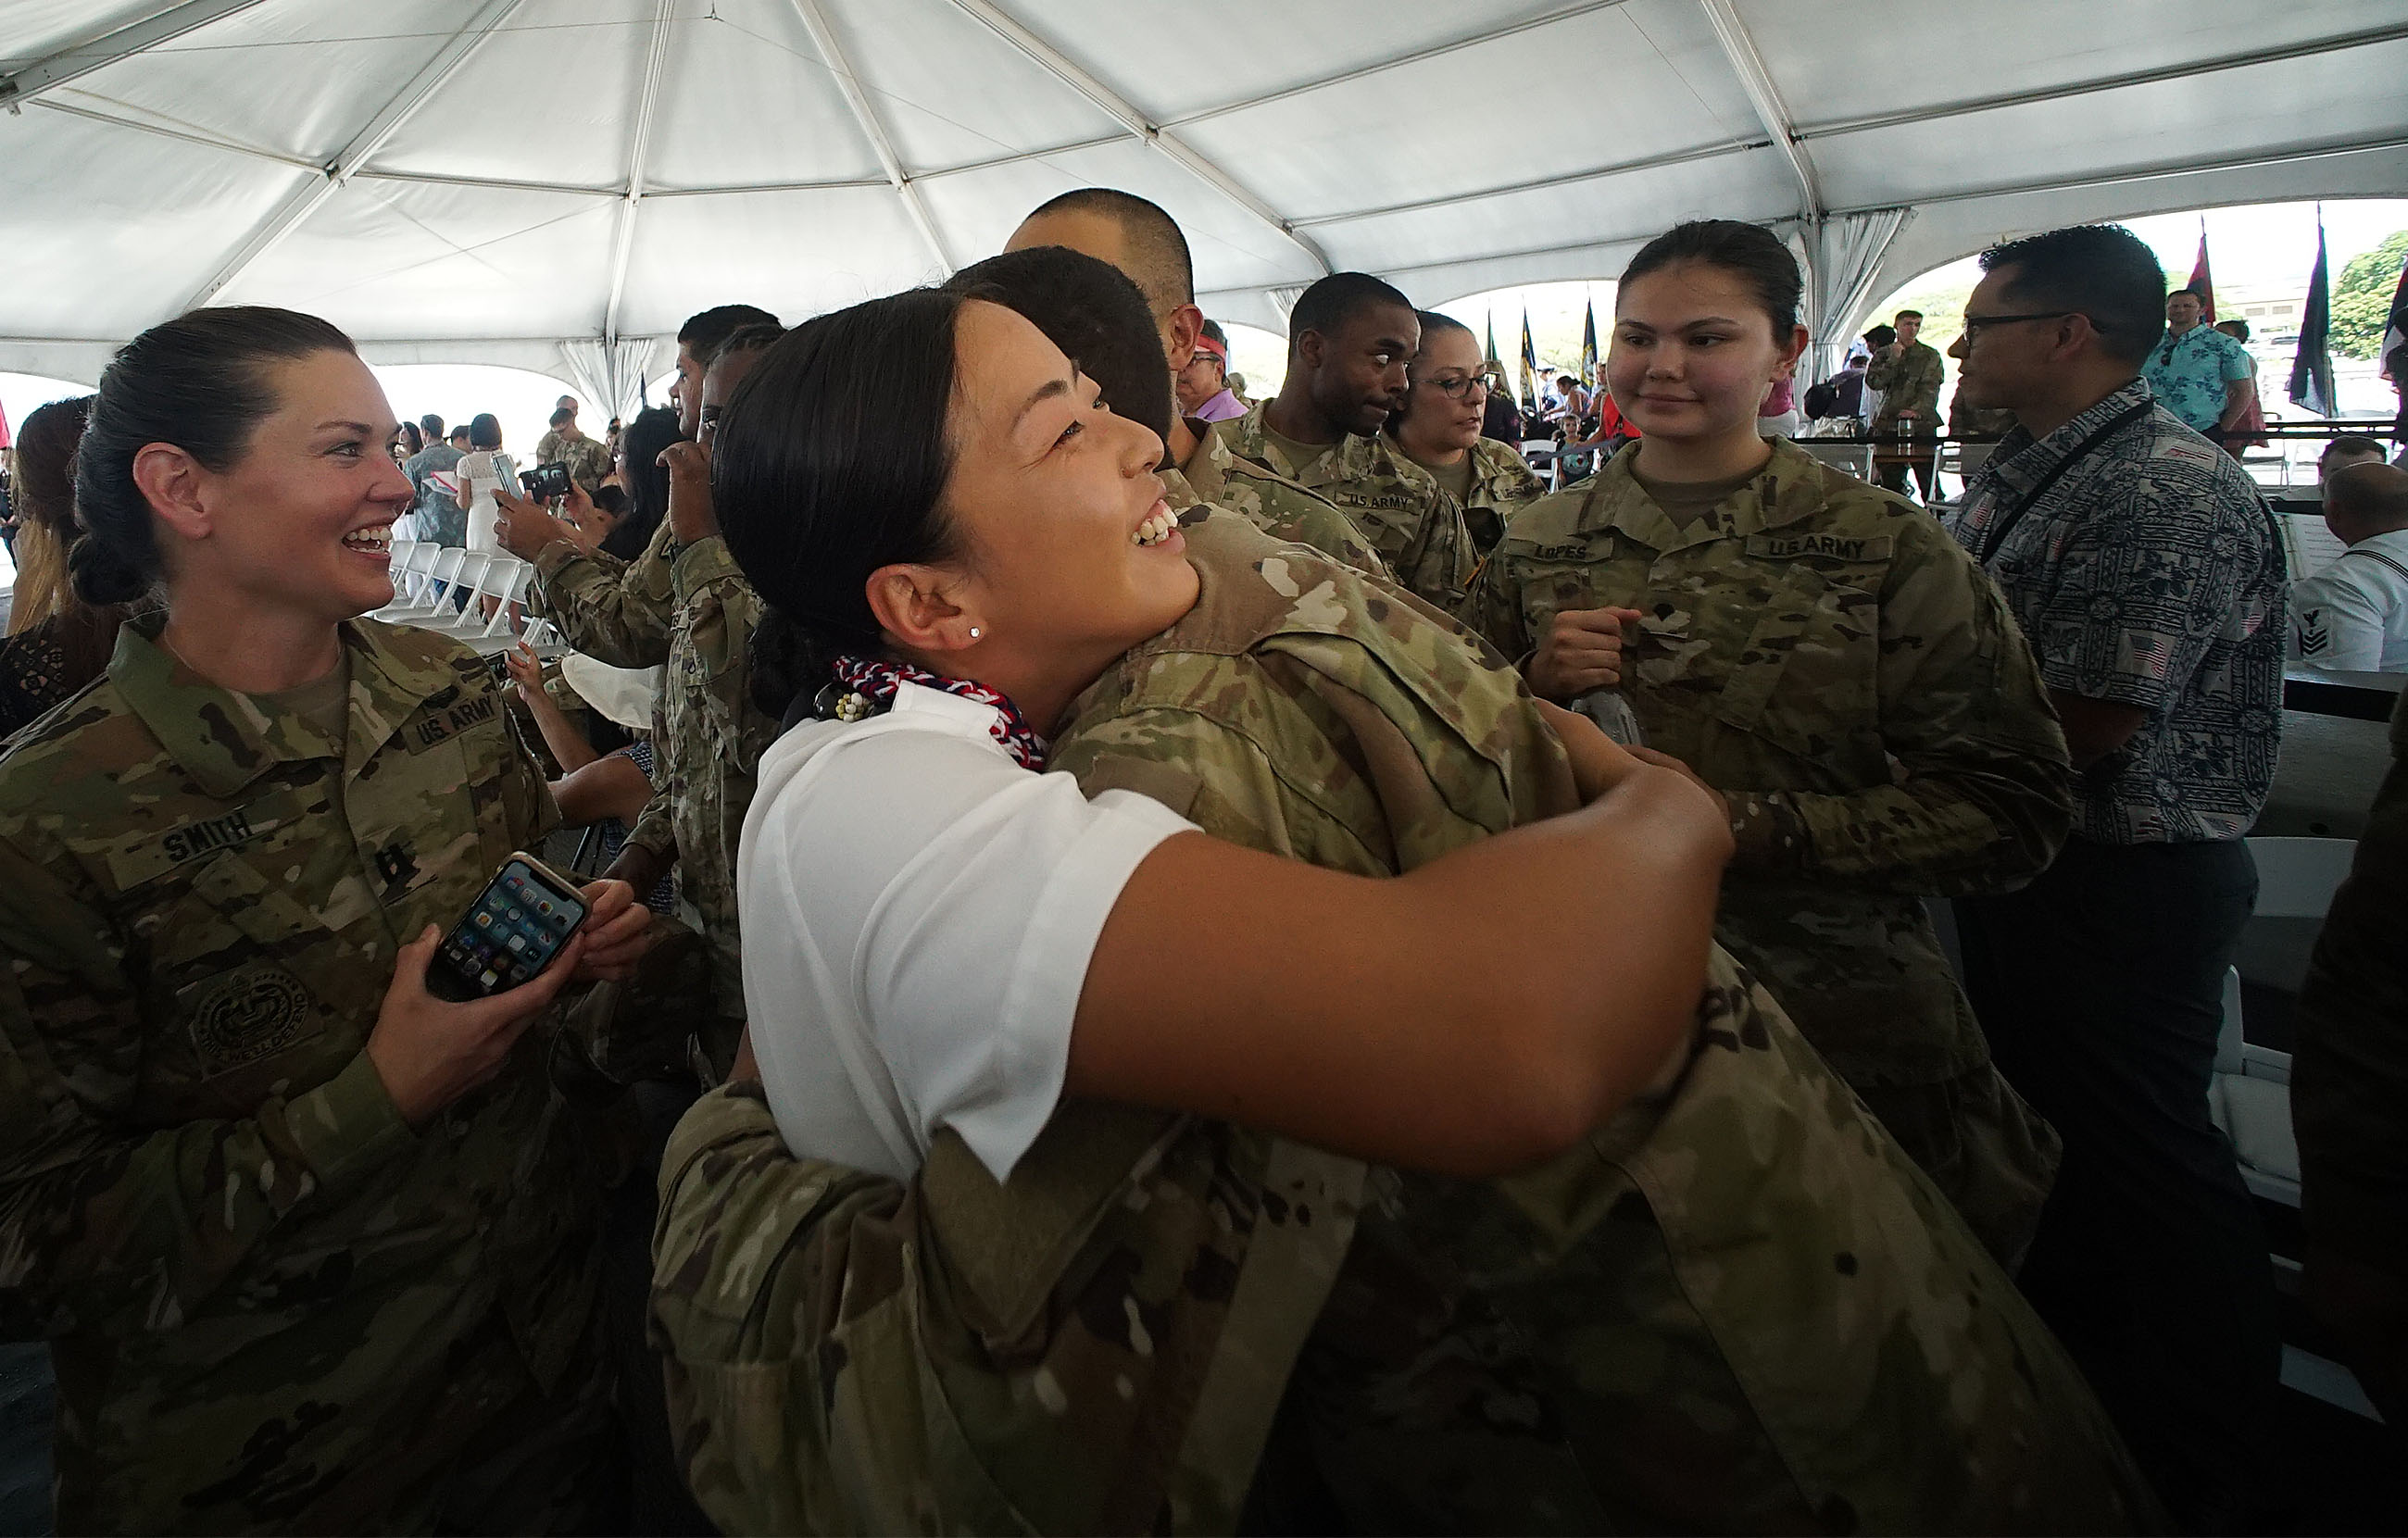 <p>After becoming an American citizen, Jiawen Liu hugs her U.S. Army supporters after the Thursday ceremony.</p>